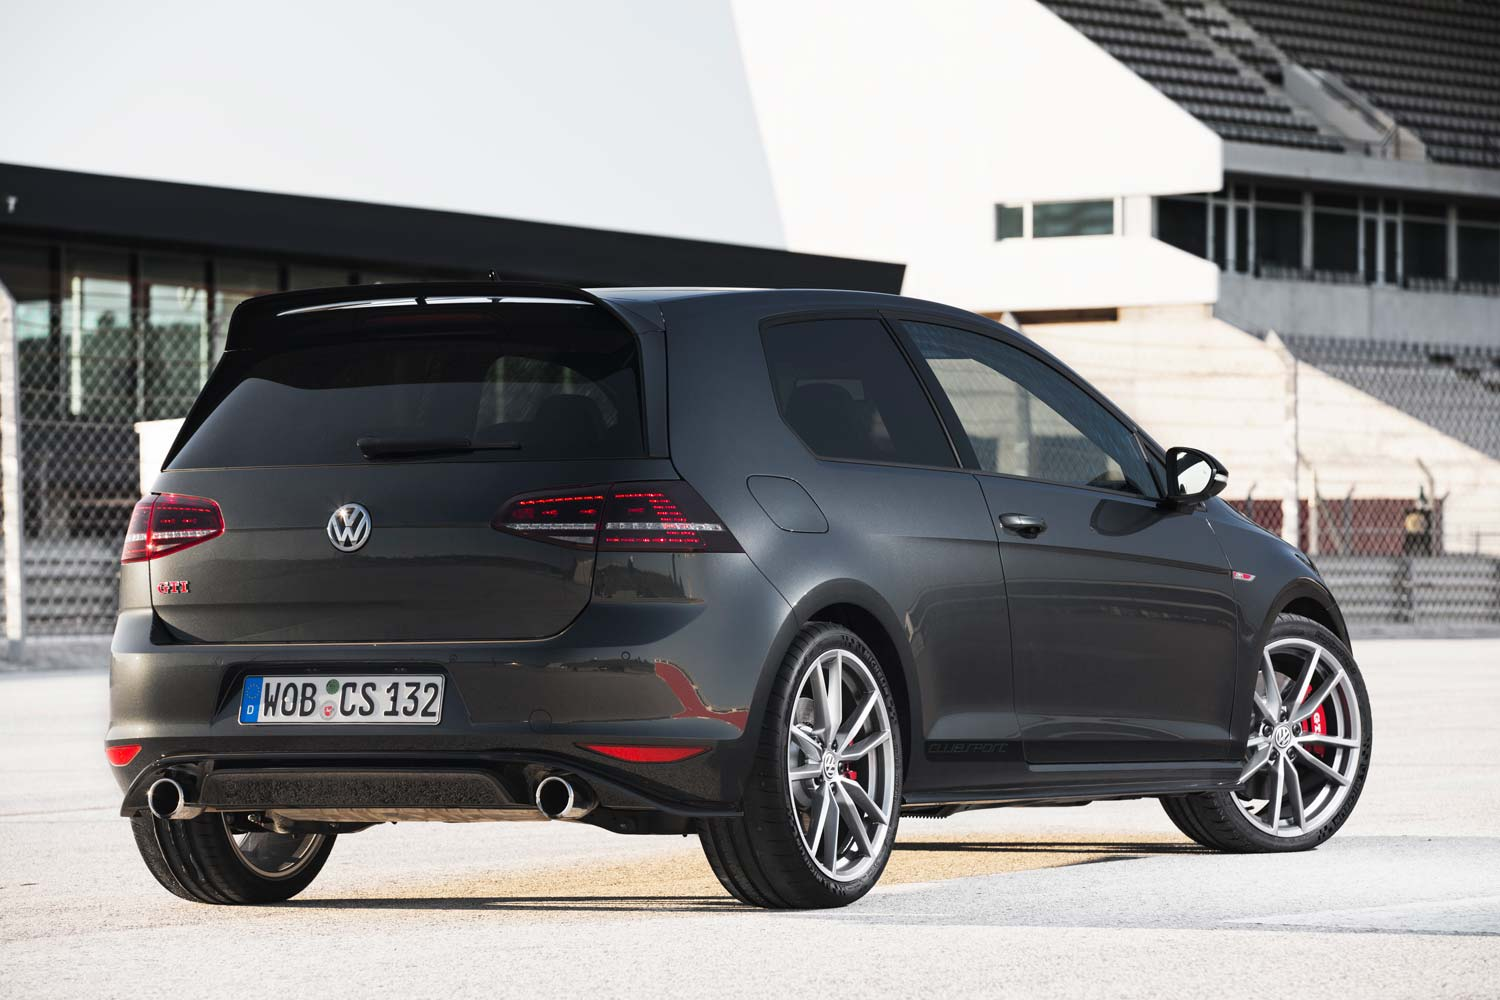 vw golf gti clubsport zum geburtstag viel druck. Black Bedroom Furniture Sets. Home Design Ideas